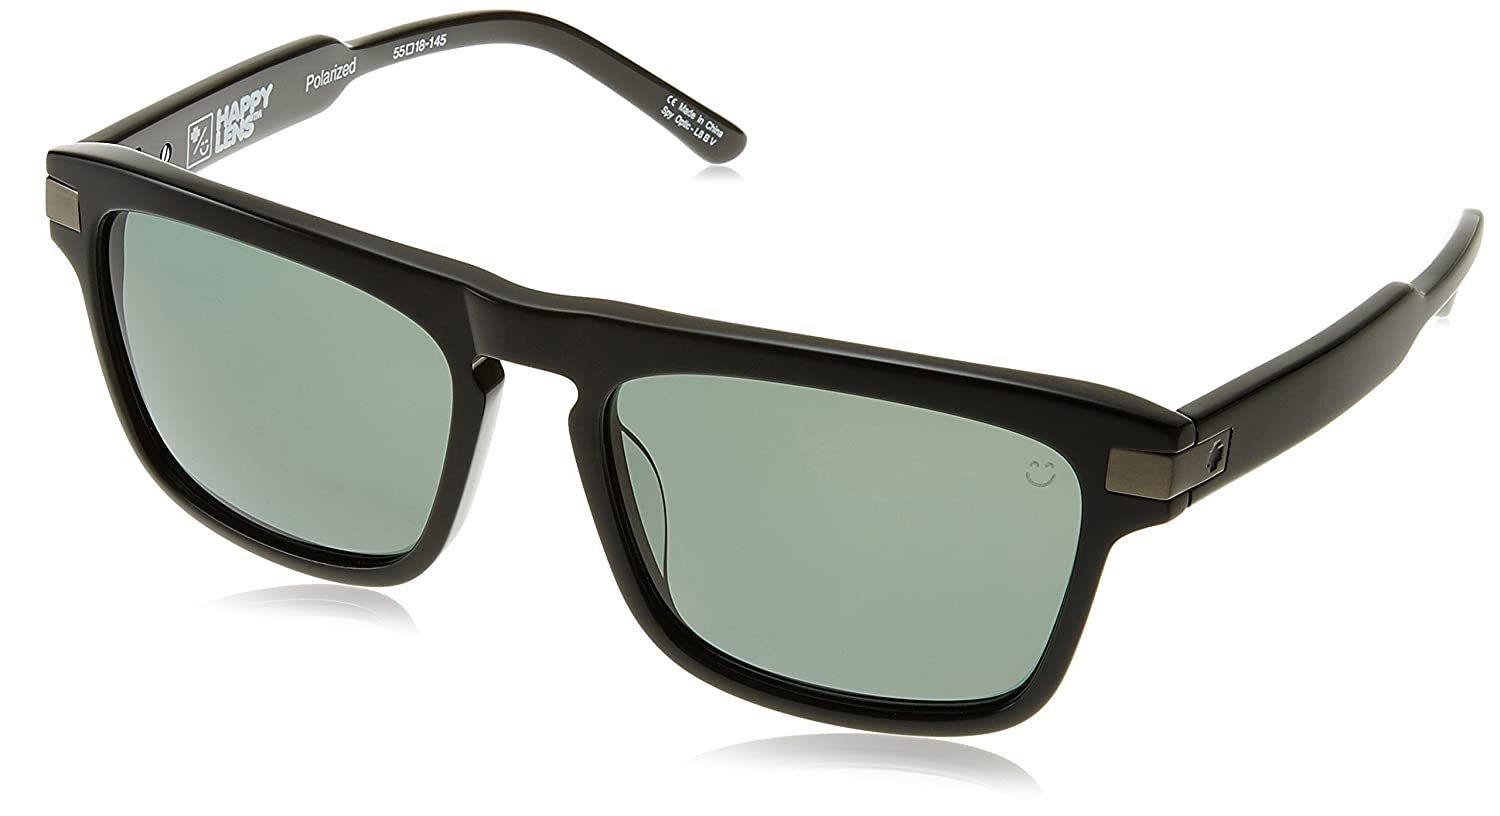 ec3cade5ca Spy Funston Black Happy Gray Green Polar Sunglasses  Spy  Amazon.ca   Luggage   Bags